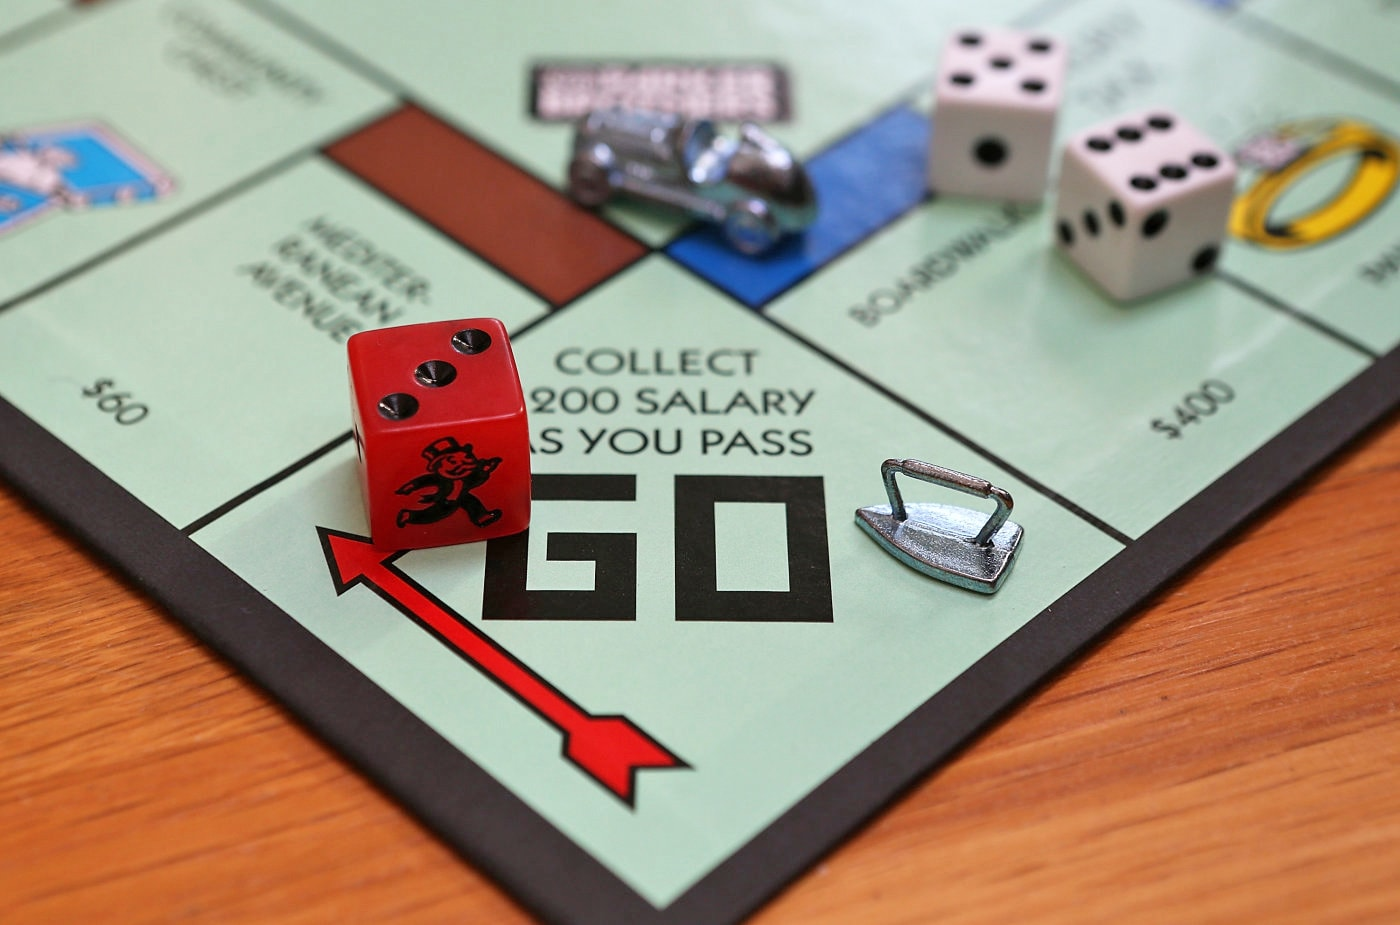 Hasbro and Indiegogo want your board game ideas